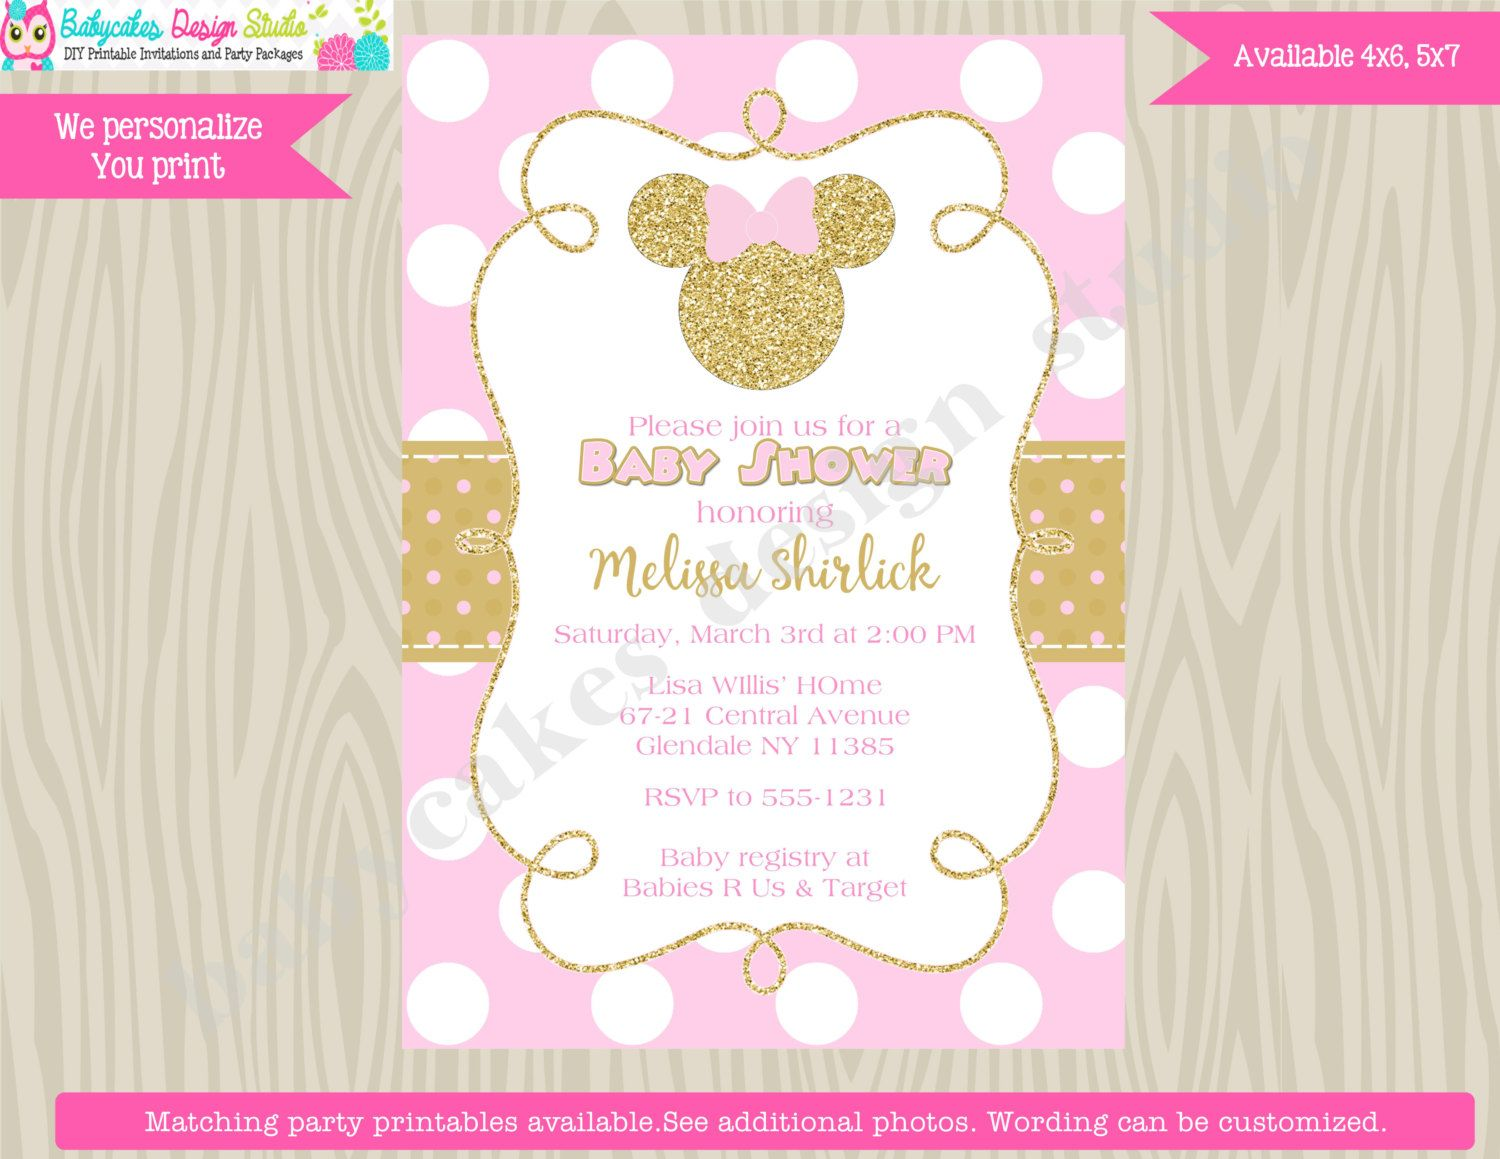 Minnie Mouse Baby Shower Invitation Invite Pink And Gold Minnie Baby Shower  Invitation Invite Digital Printable DIY By Jcbabycakes On Etsy